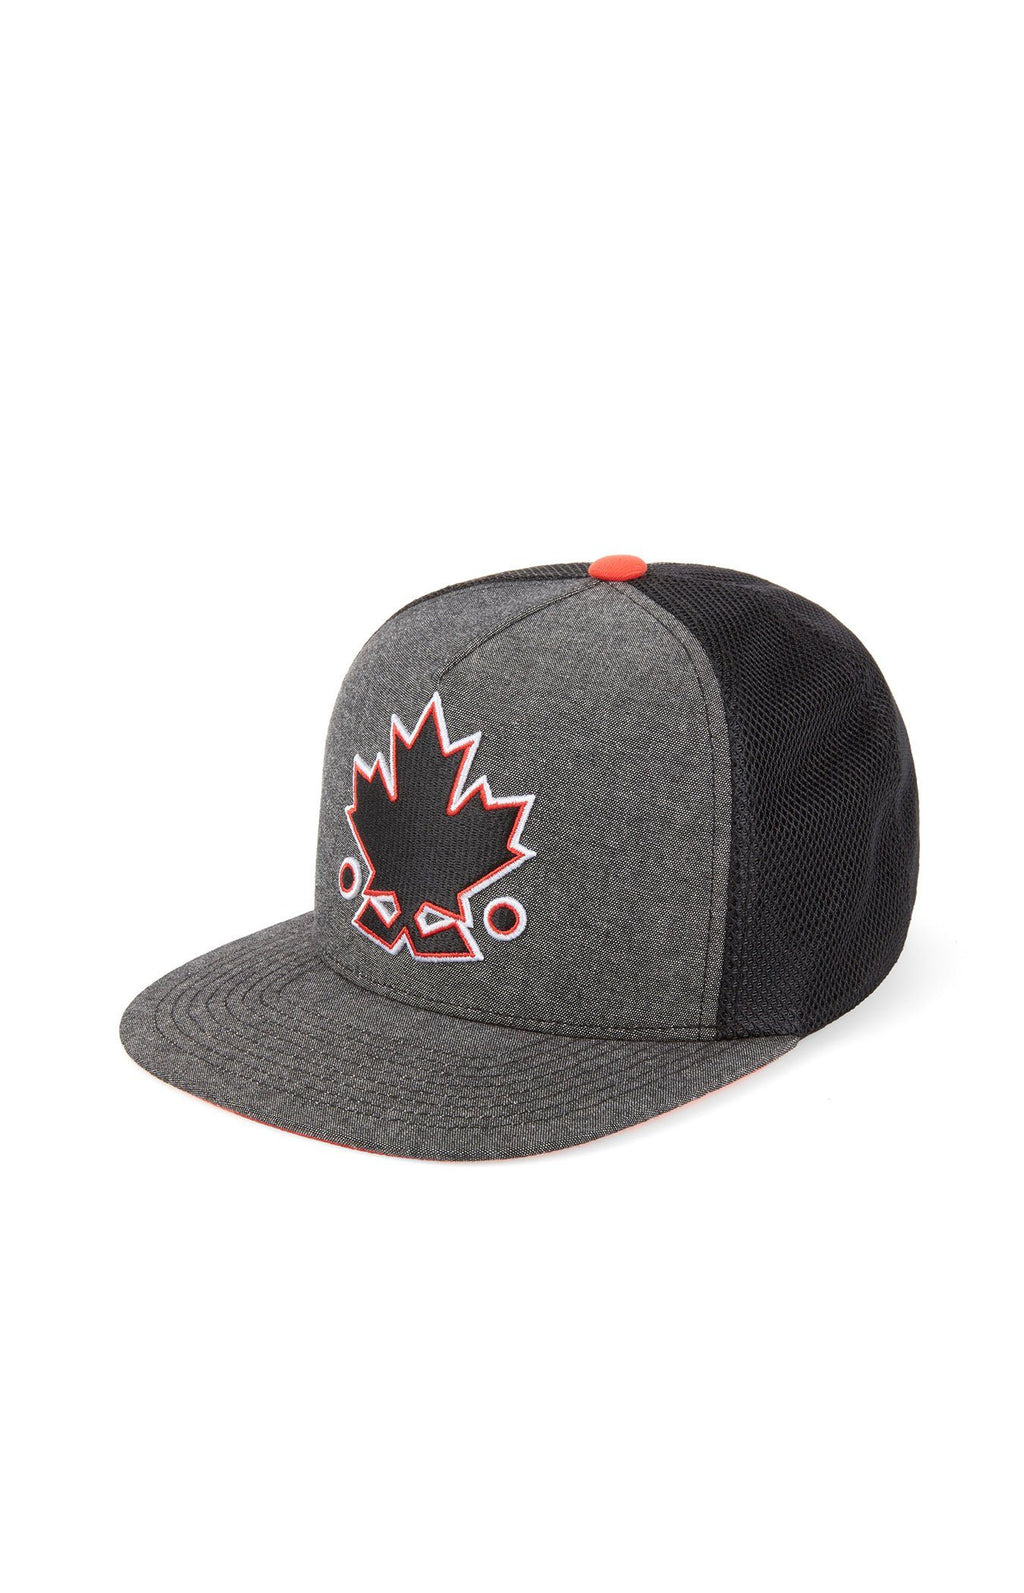 Born To Play - Flat Brim